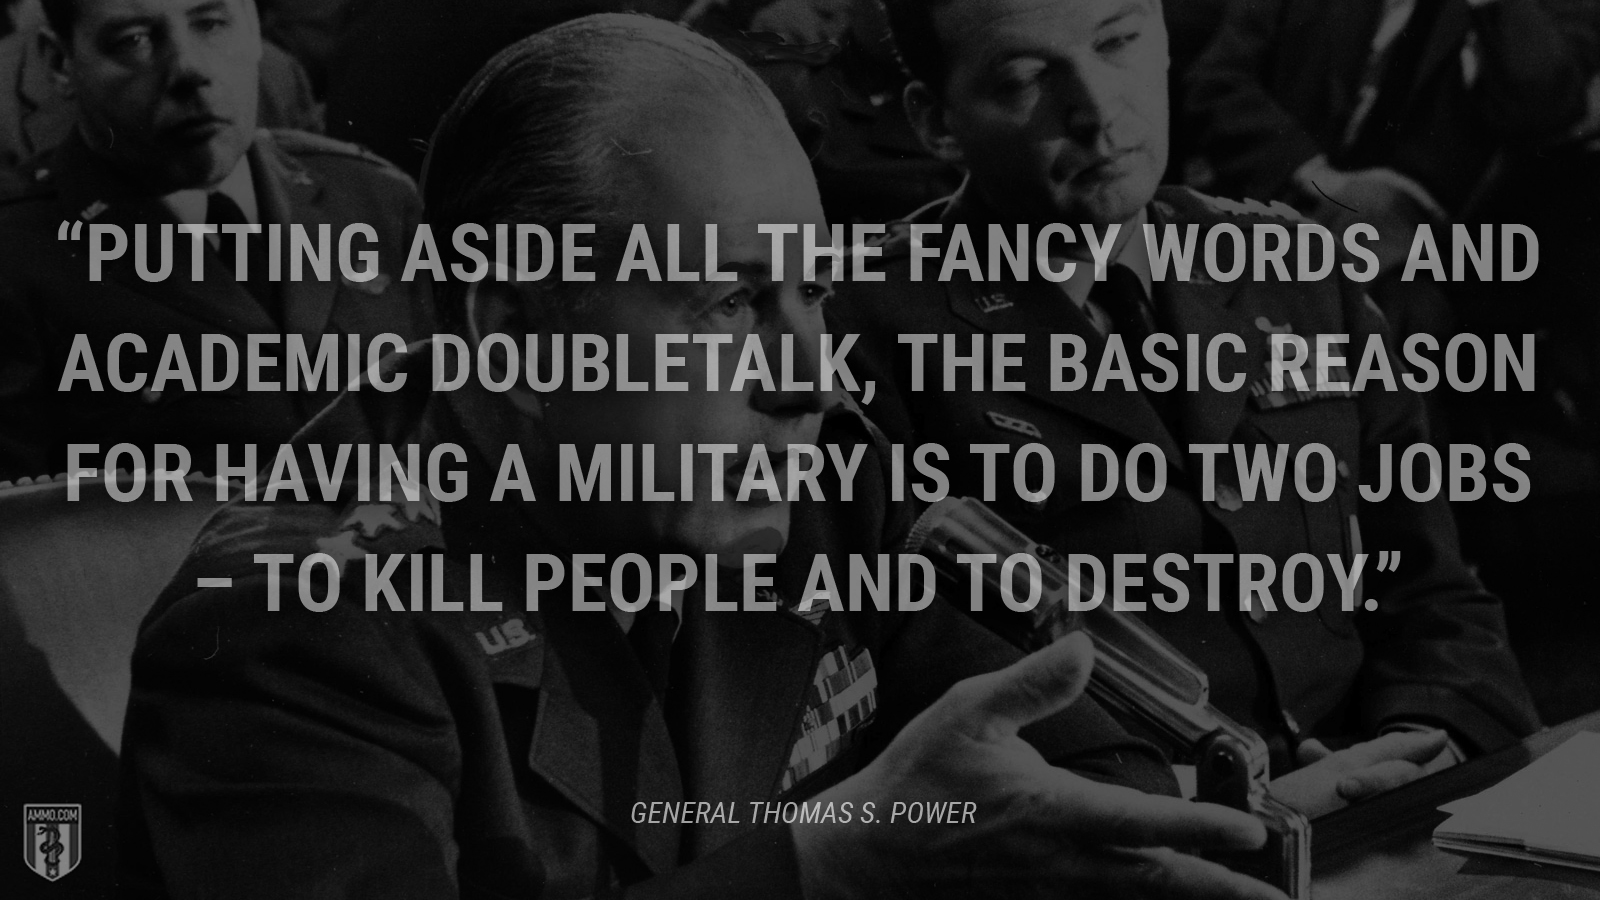 """Putting aside all the fancy words and academic doubletalk, the basic reason for having a military is to do two jobs --to kill people and to destroy."" - Thomas S. Power"